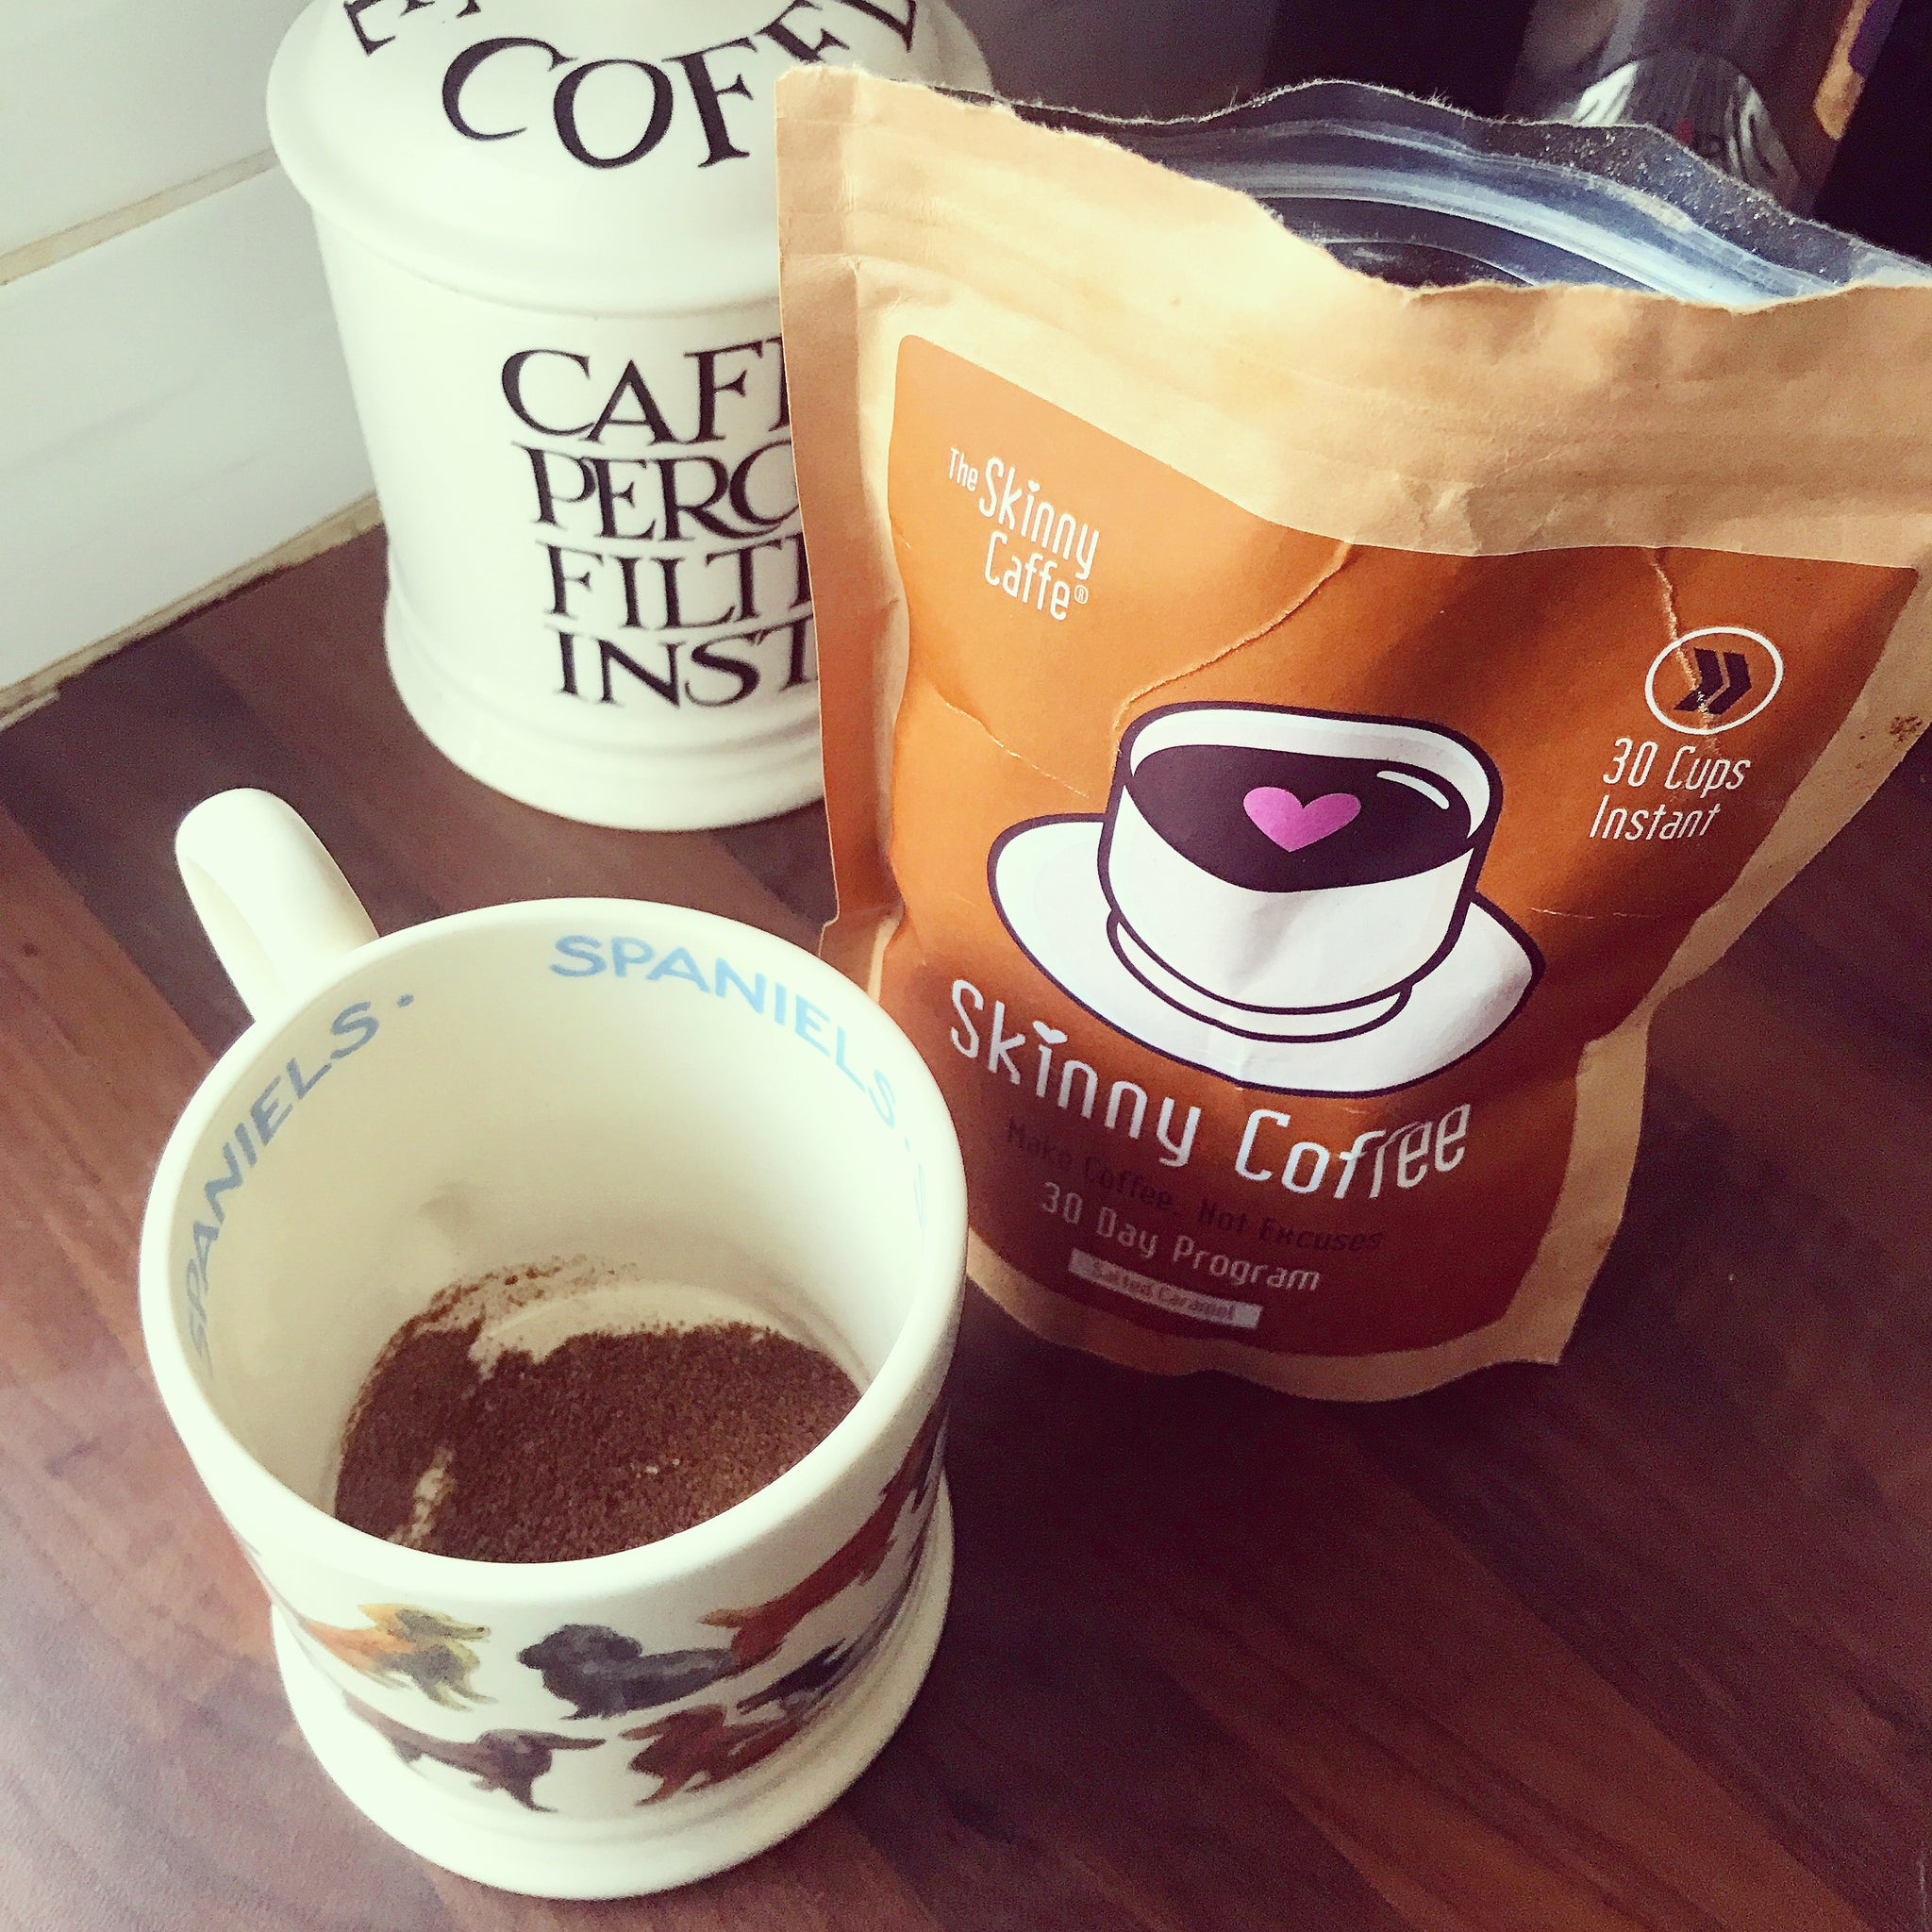 My Honest Review On The Skinny Caffe Salted Caramel Coffee